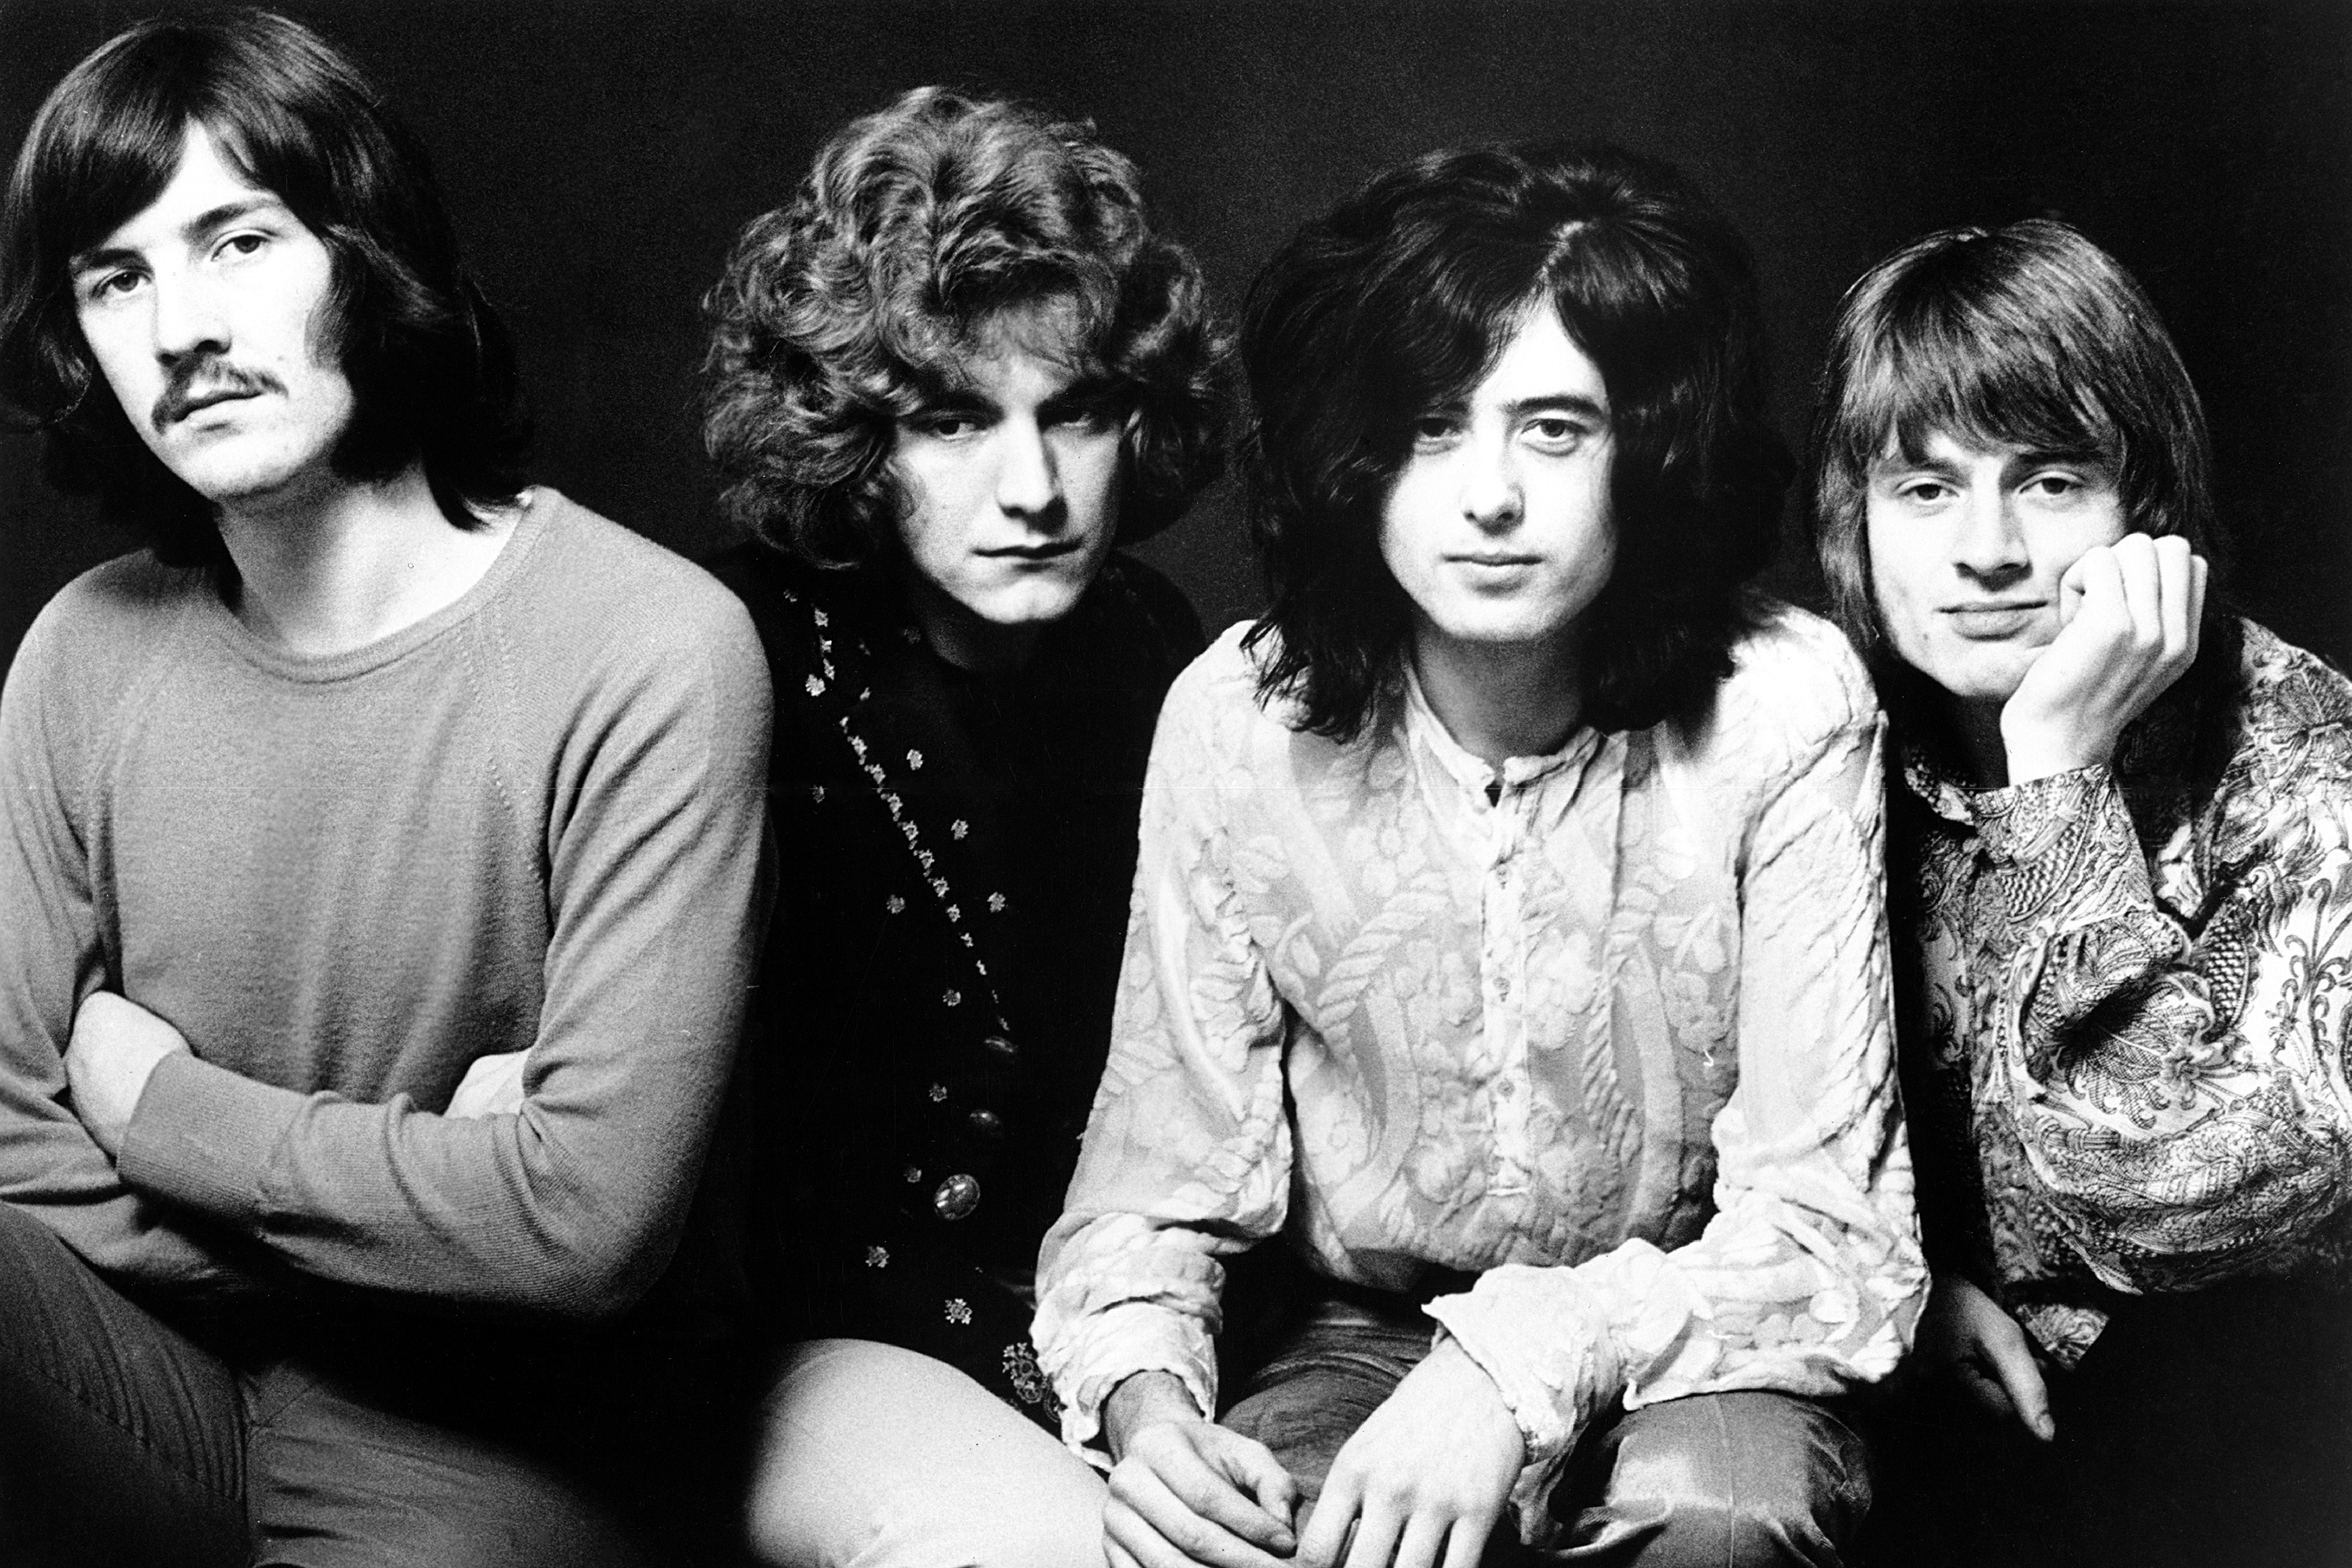 ENGLAND - 1969: Rock band 'Led Zeppelin' poses for a publicity portrait in 1969 in England. (L-R) John Bonham, Robert Plant, Jimmy Page, John Paul Jones. (Photo by Michael Ochs Archives/Getty Images)